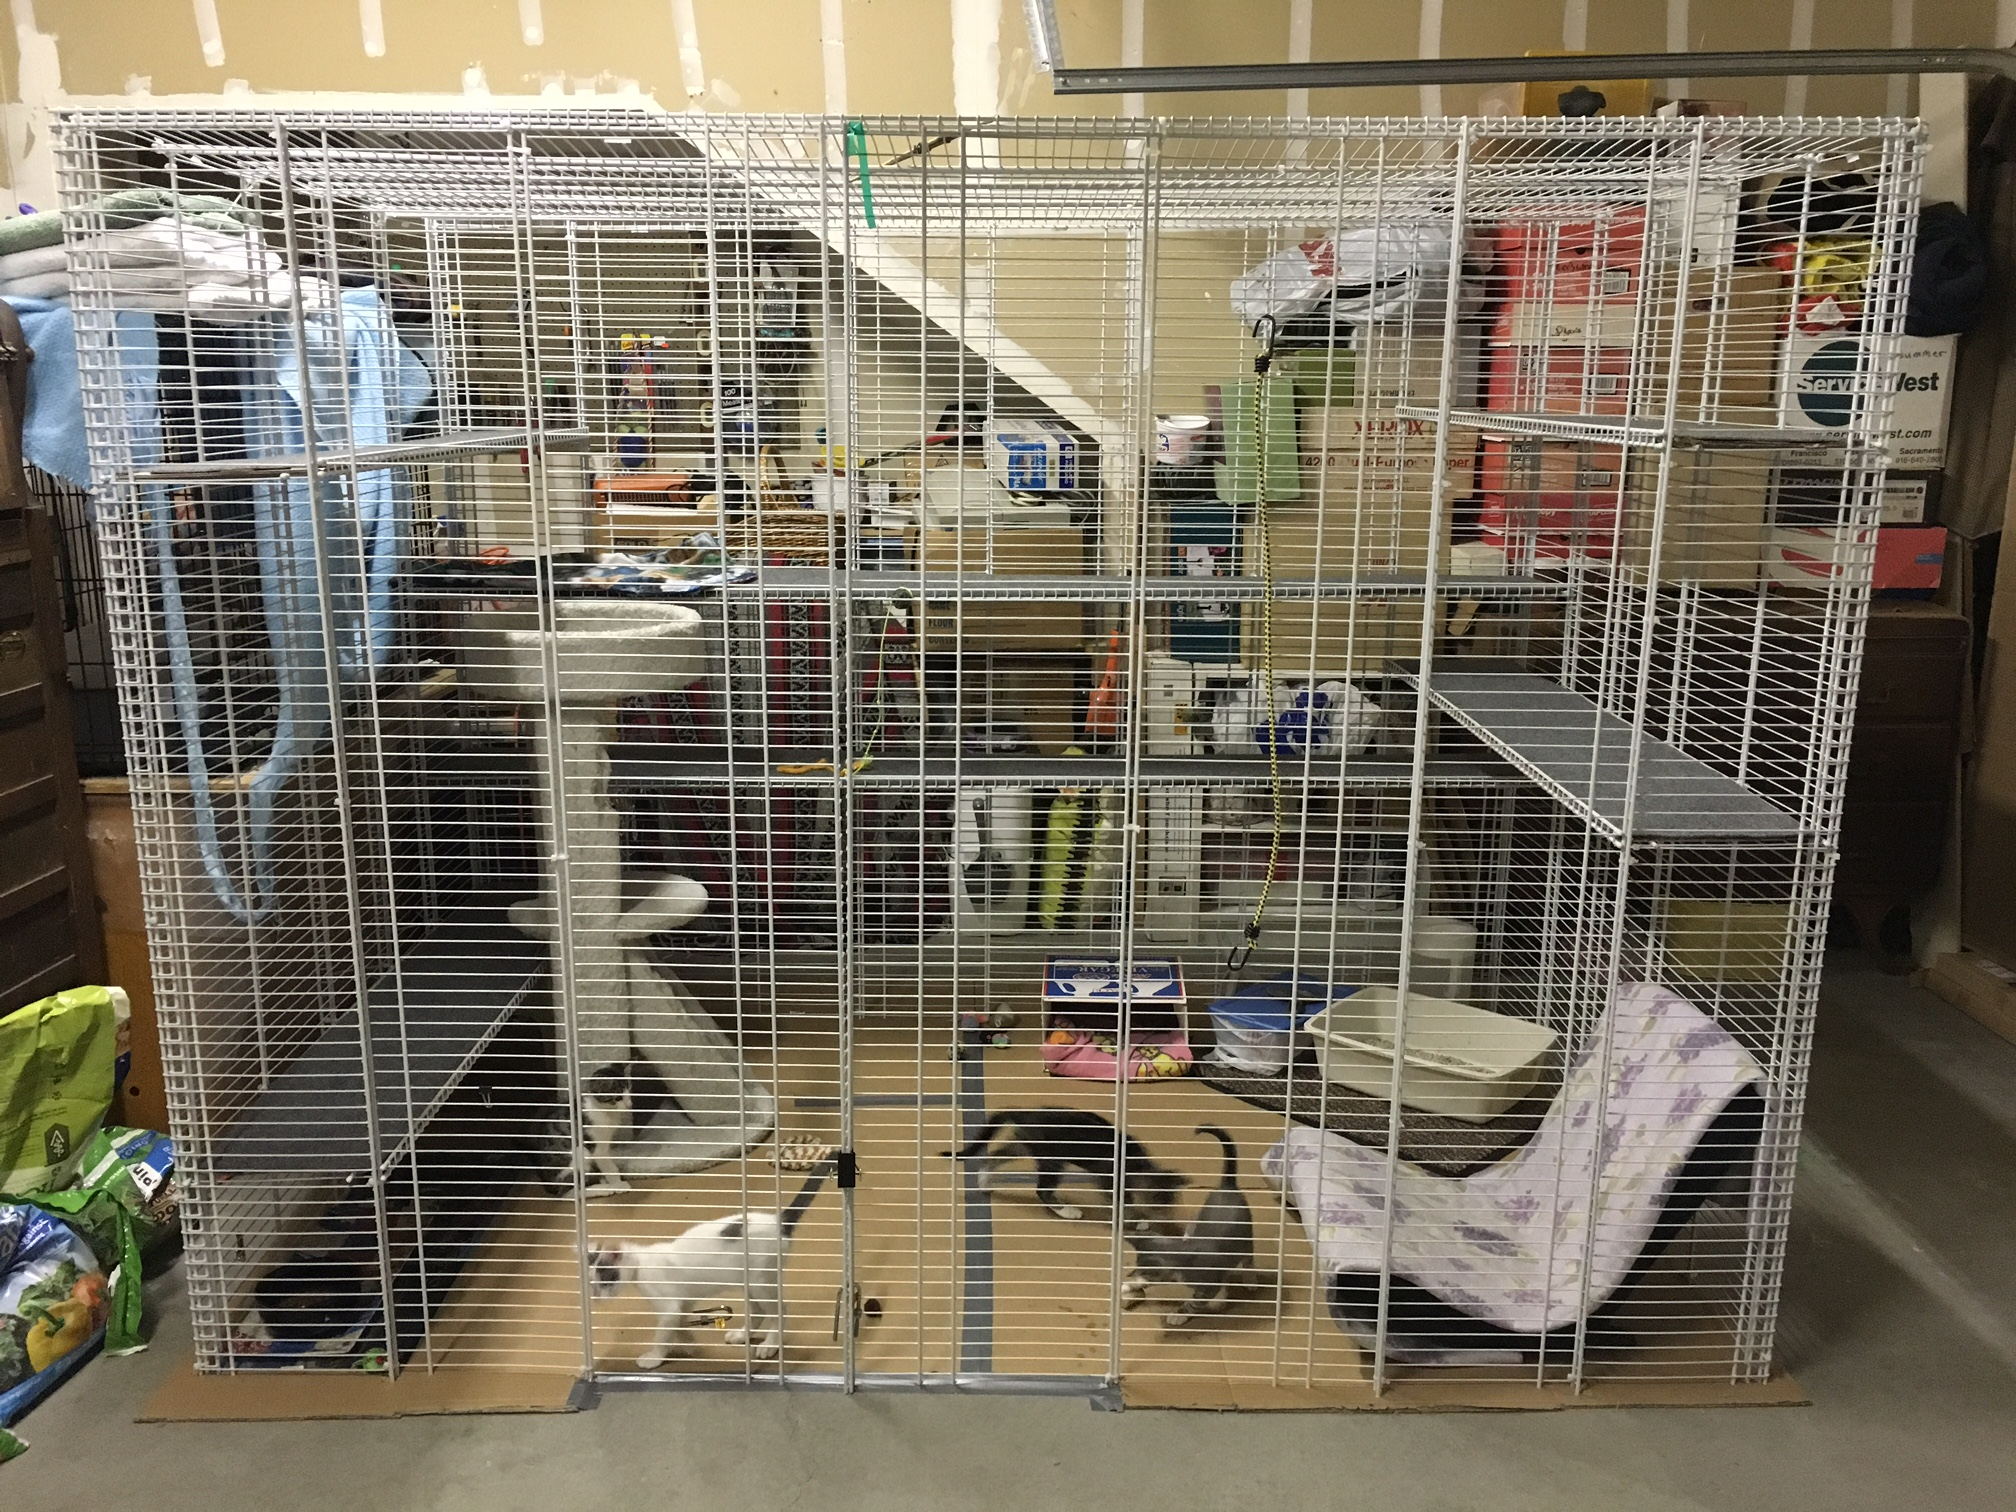 Enclosures For Cats Community Concern Exterior Wiring Safe Inexpensive Cat Enclosure